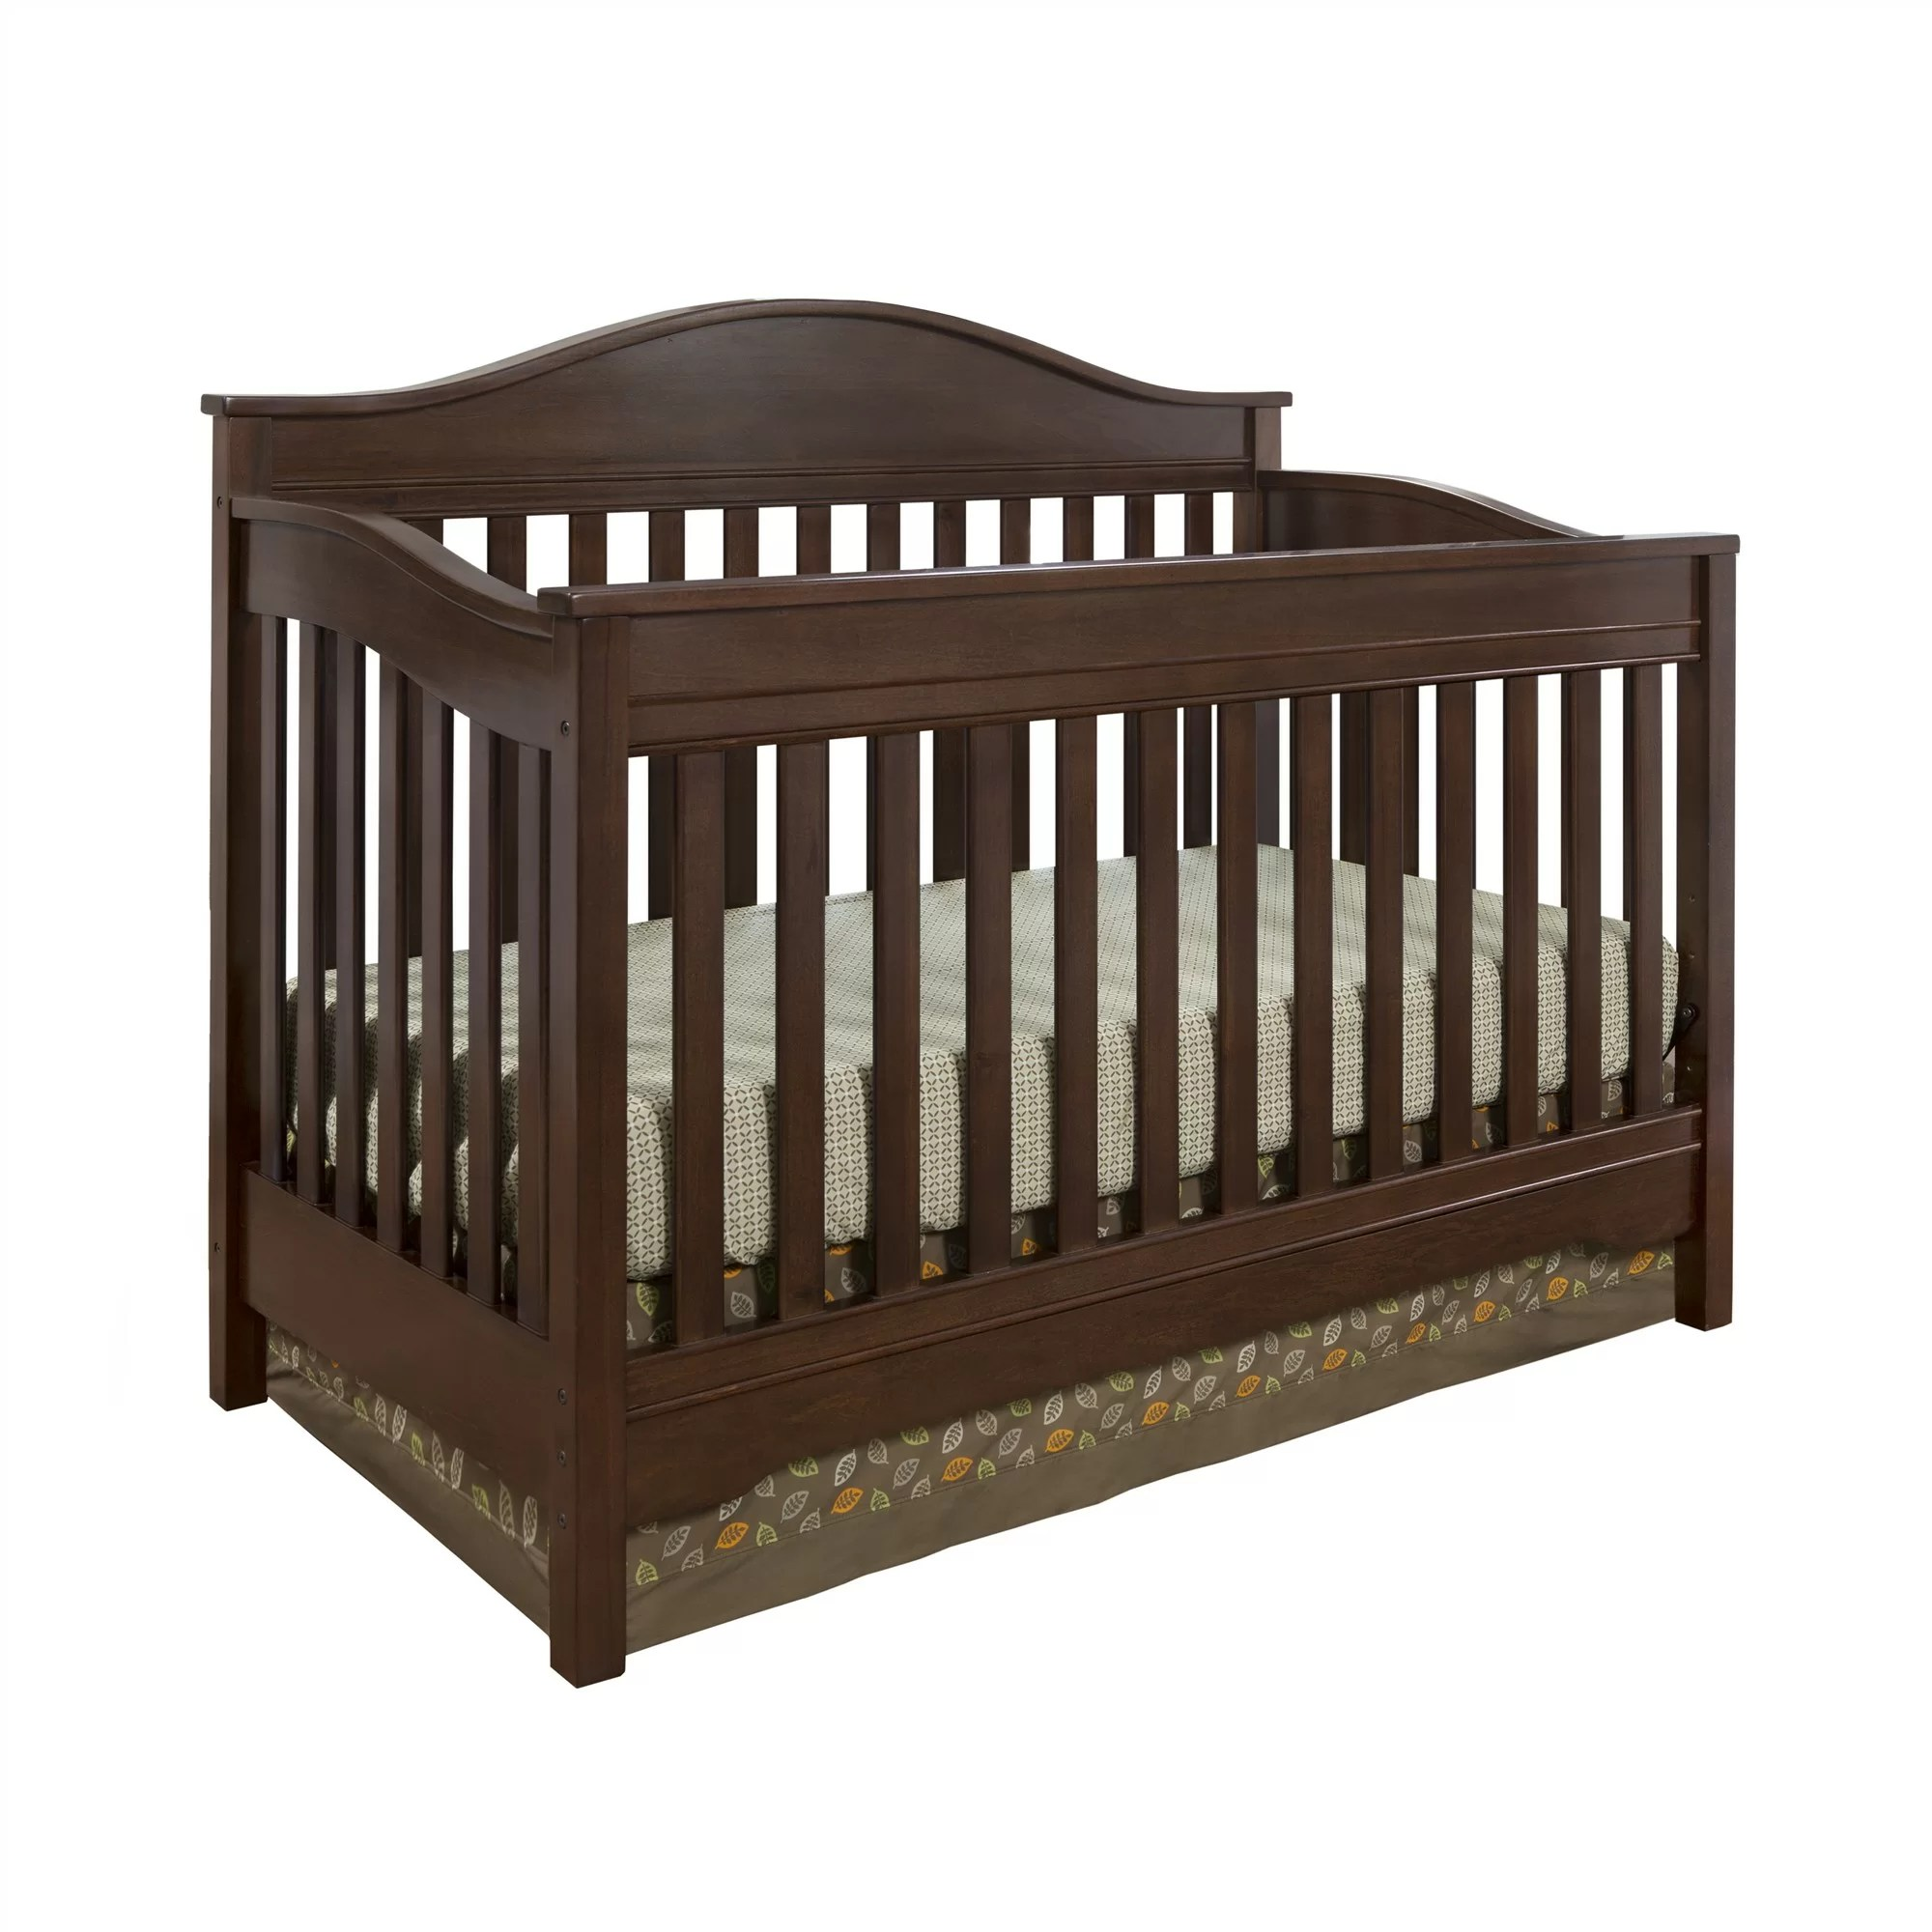 Baby Relax Eddie Bauer Langley 3-in-1 Convertible Crib ...